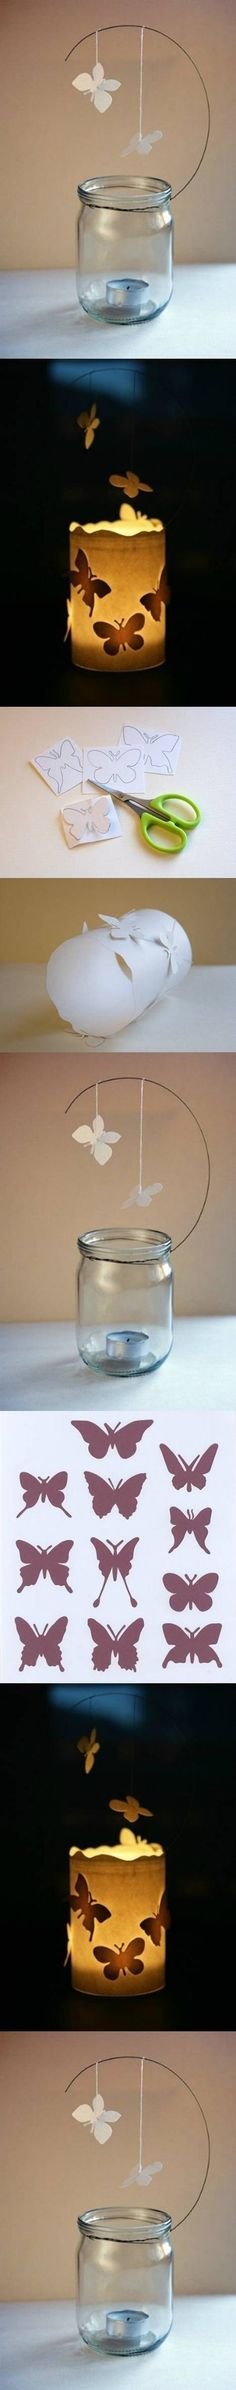 DIY Butterfly Candle Light Pictures, Photos, and Images for Facebook, Tumblr, Pinterest, and Twitter